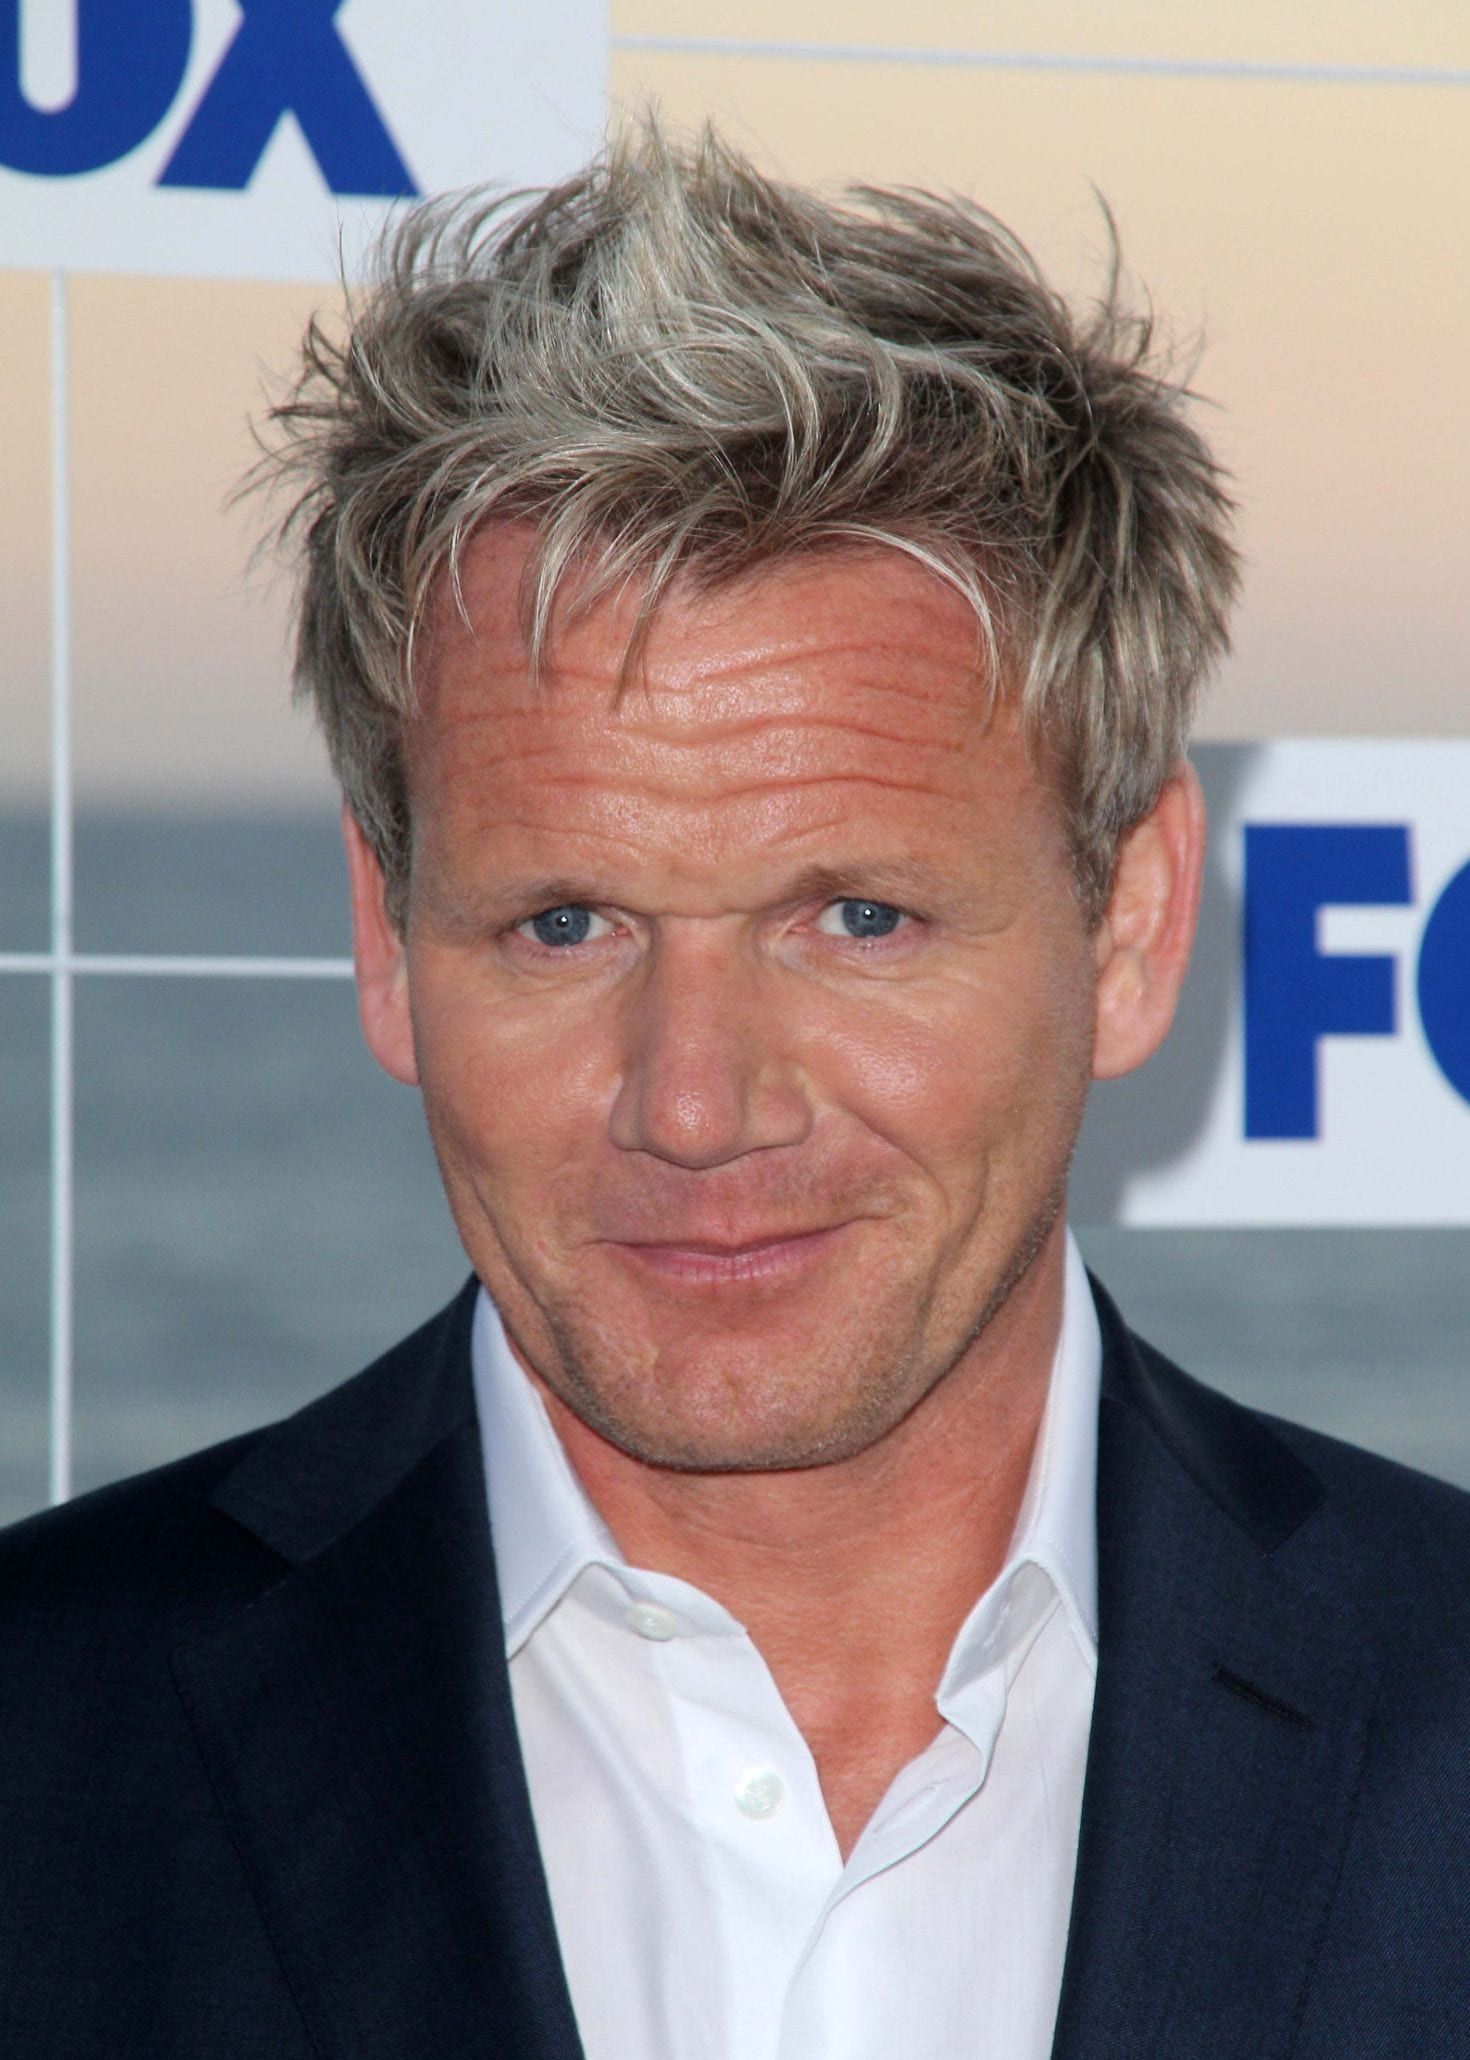 Gordon Ramsay Receding Hairline